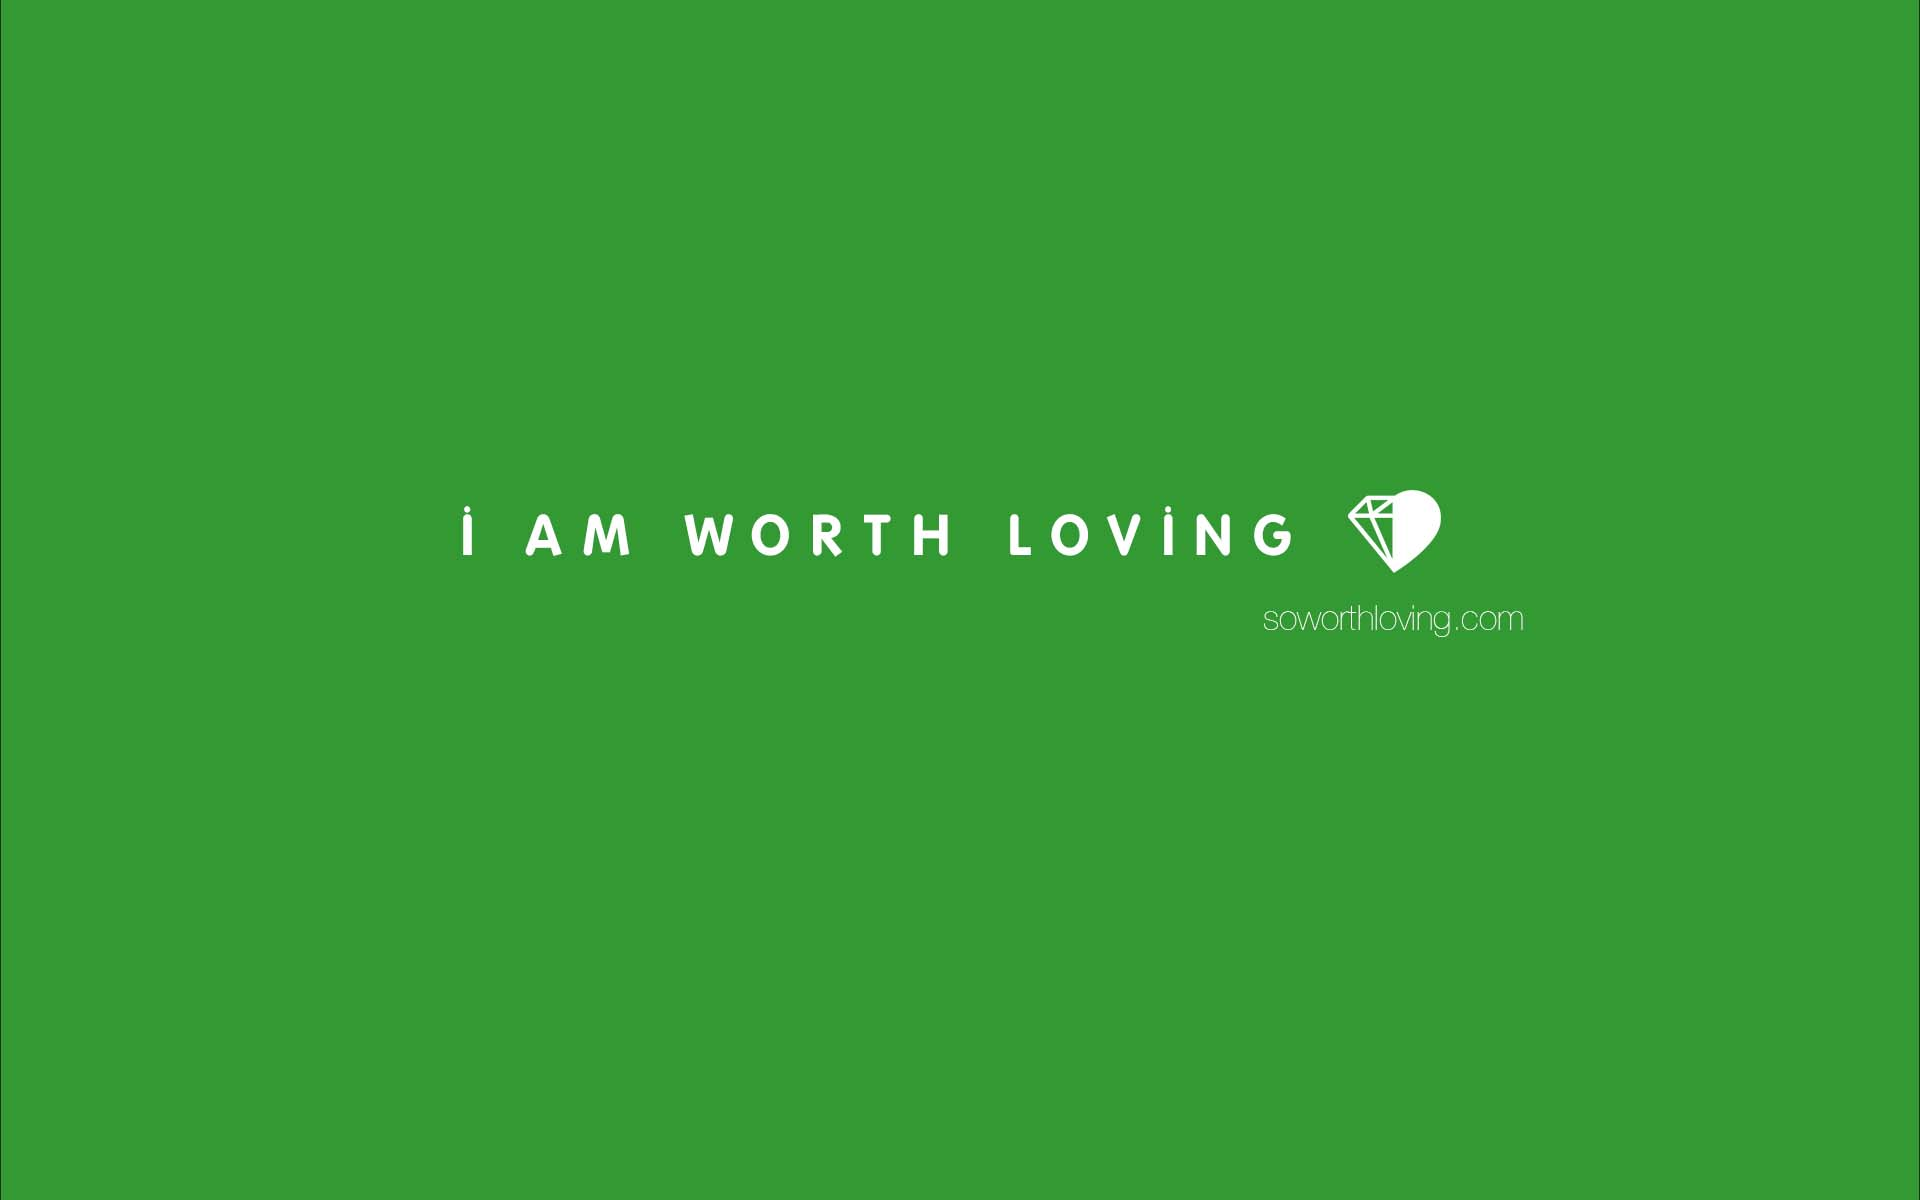 Bosch09 - I Am Worth Loving Wallpaper